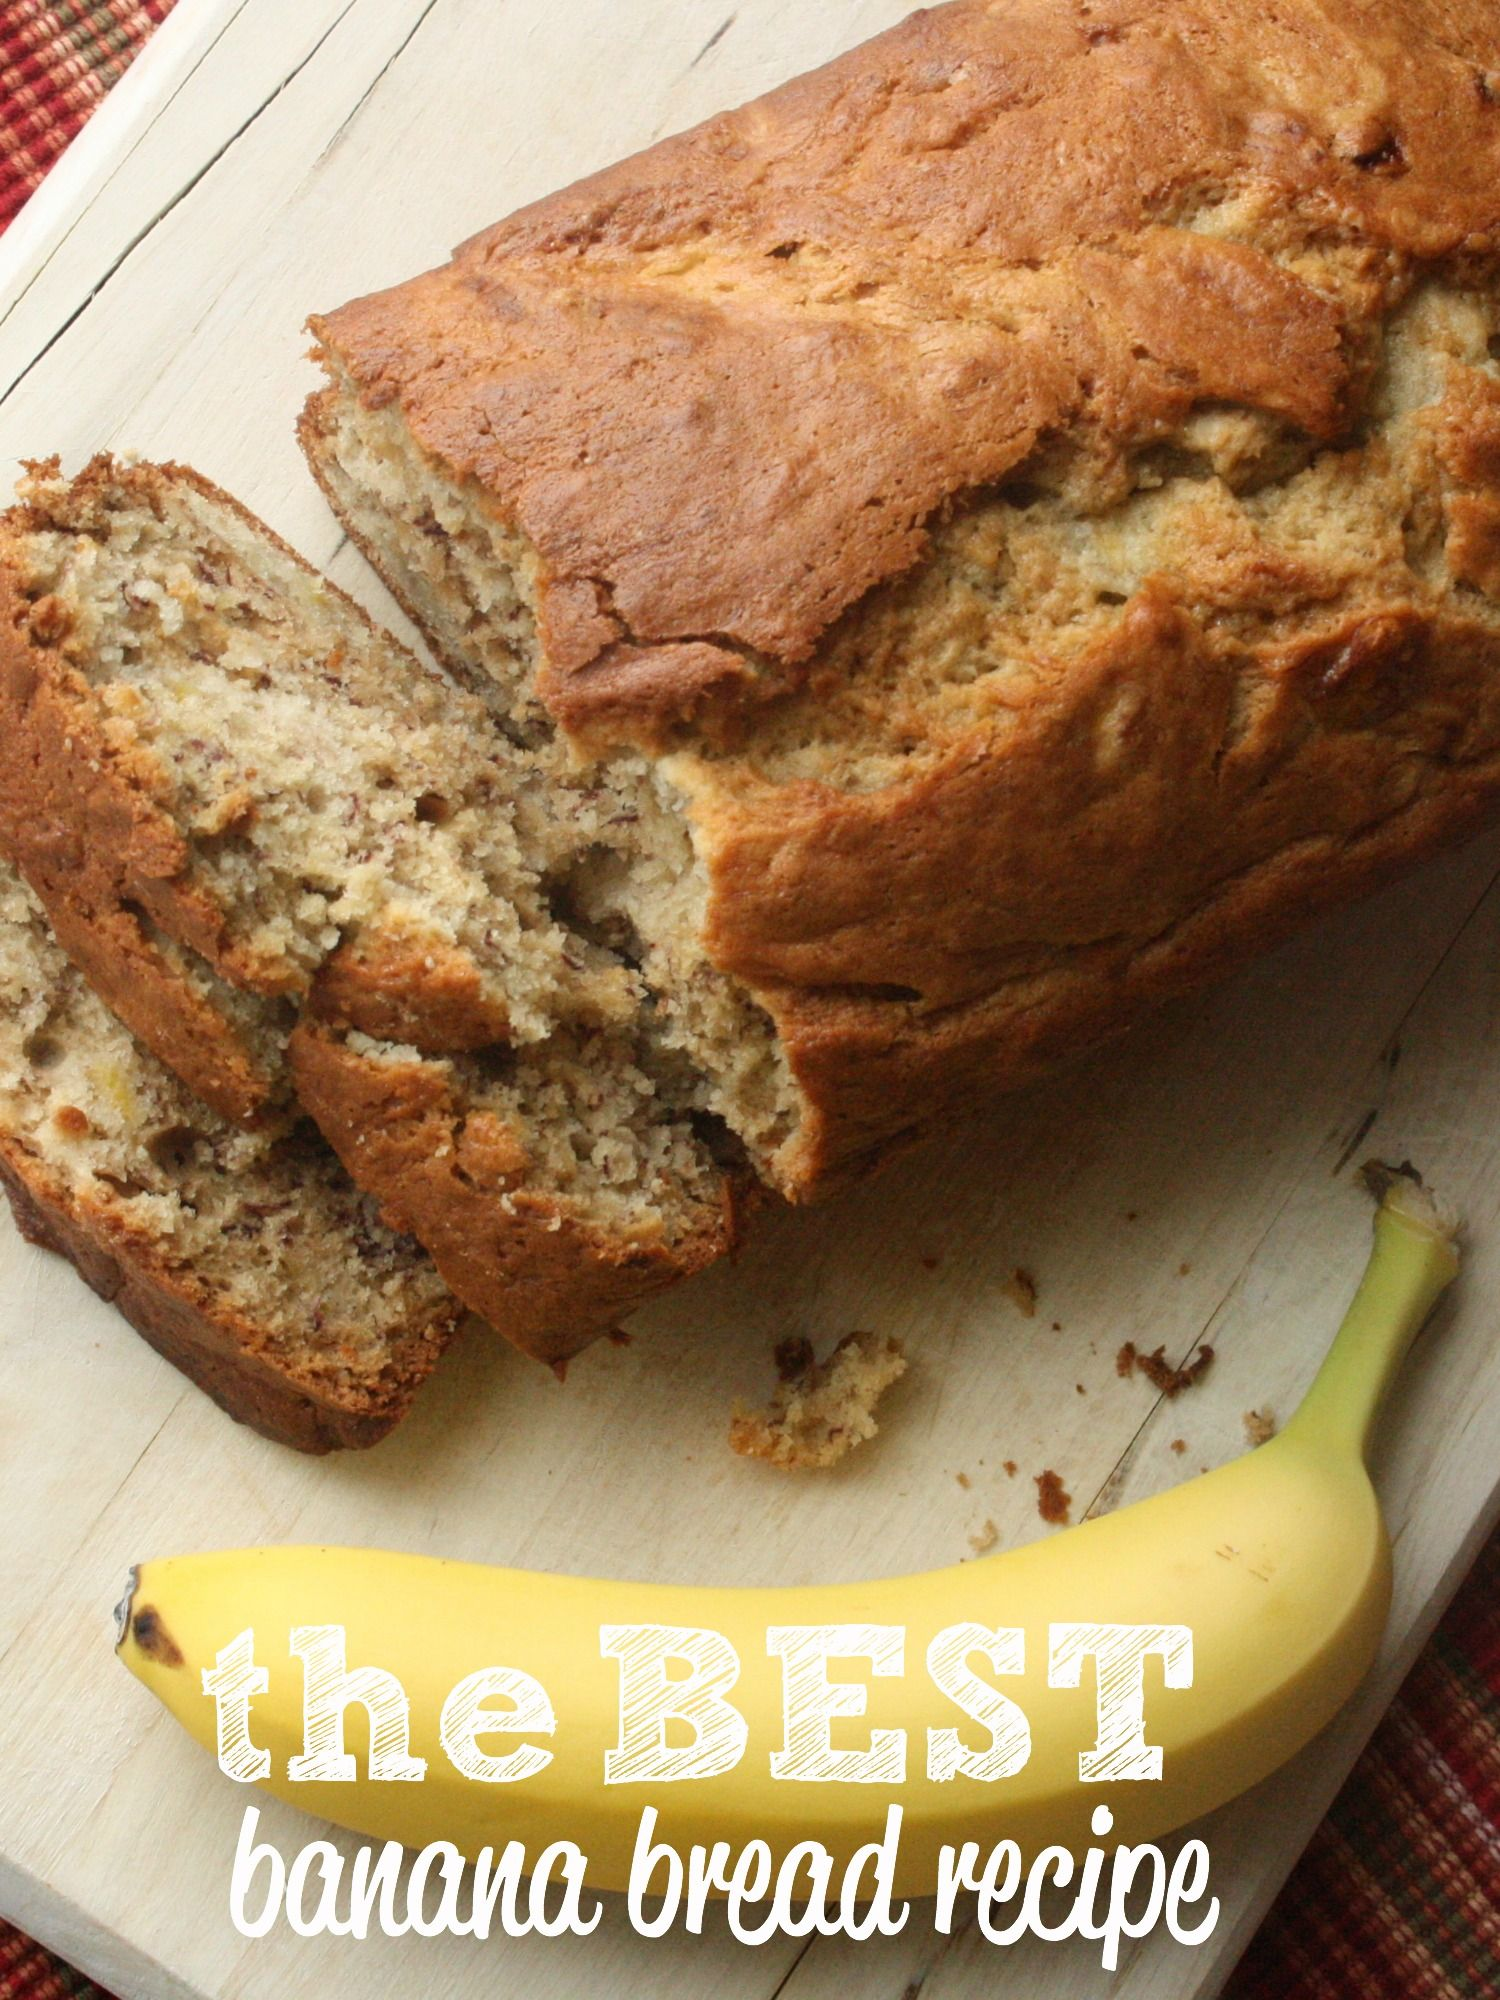 This banana bread recipe, moist, easy and fantastic - I tell you, those are the only ways I have to describe it - please add this one to your recipe books. You won't regret it, it's the BEST! I mean how else can I eat an entire loaf myself in less than 2 days??! Also, this recipe makes two loaves - it's awesome!